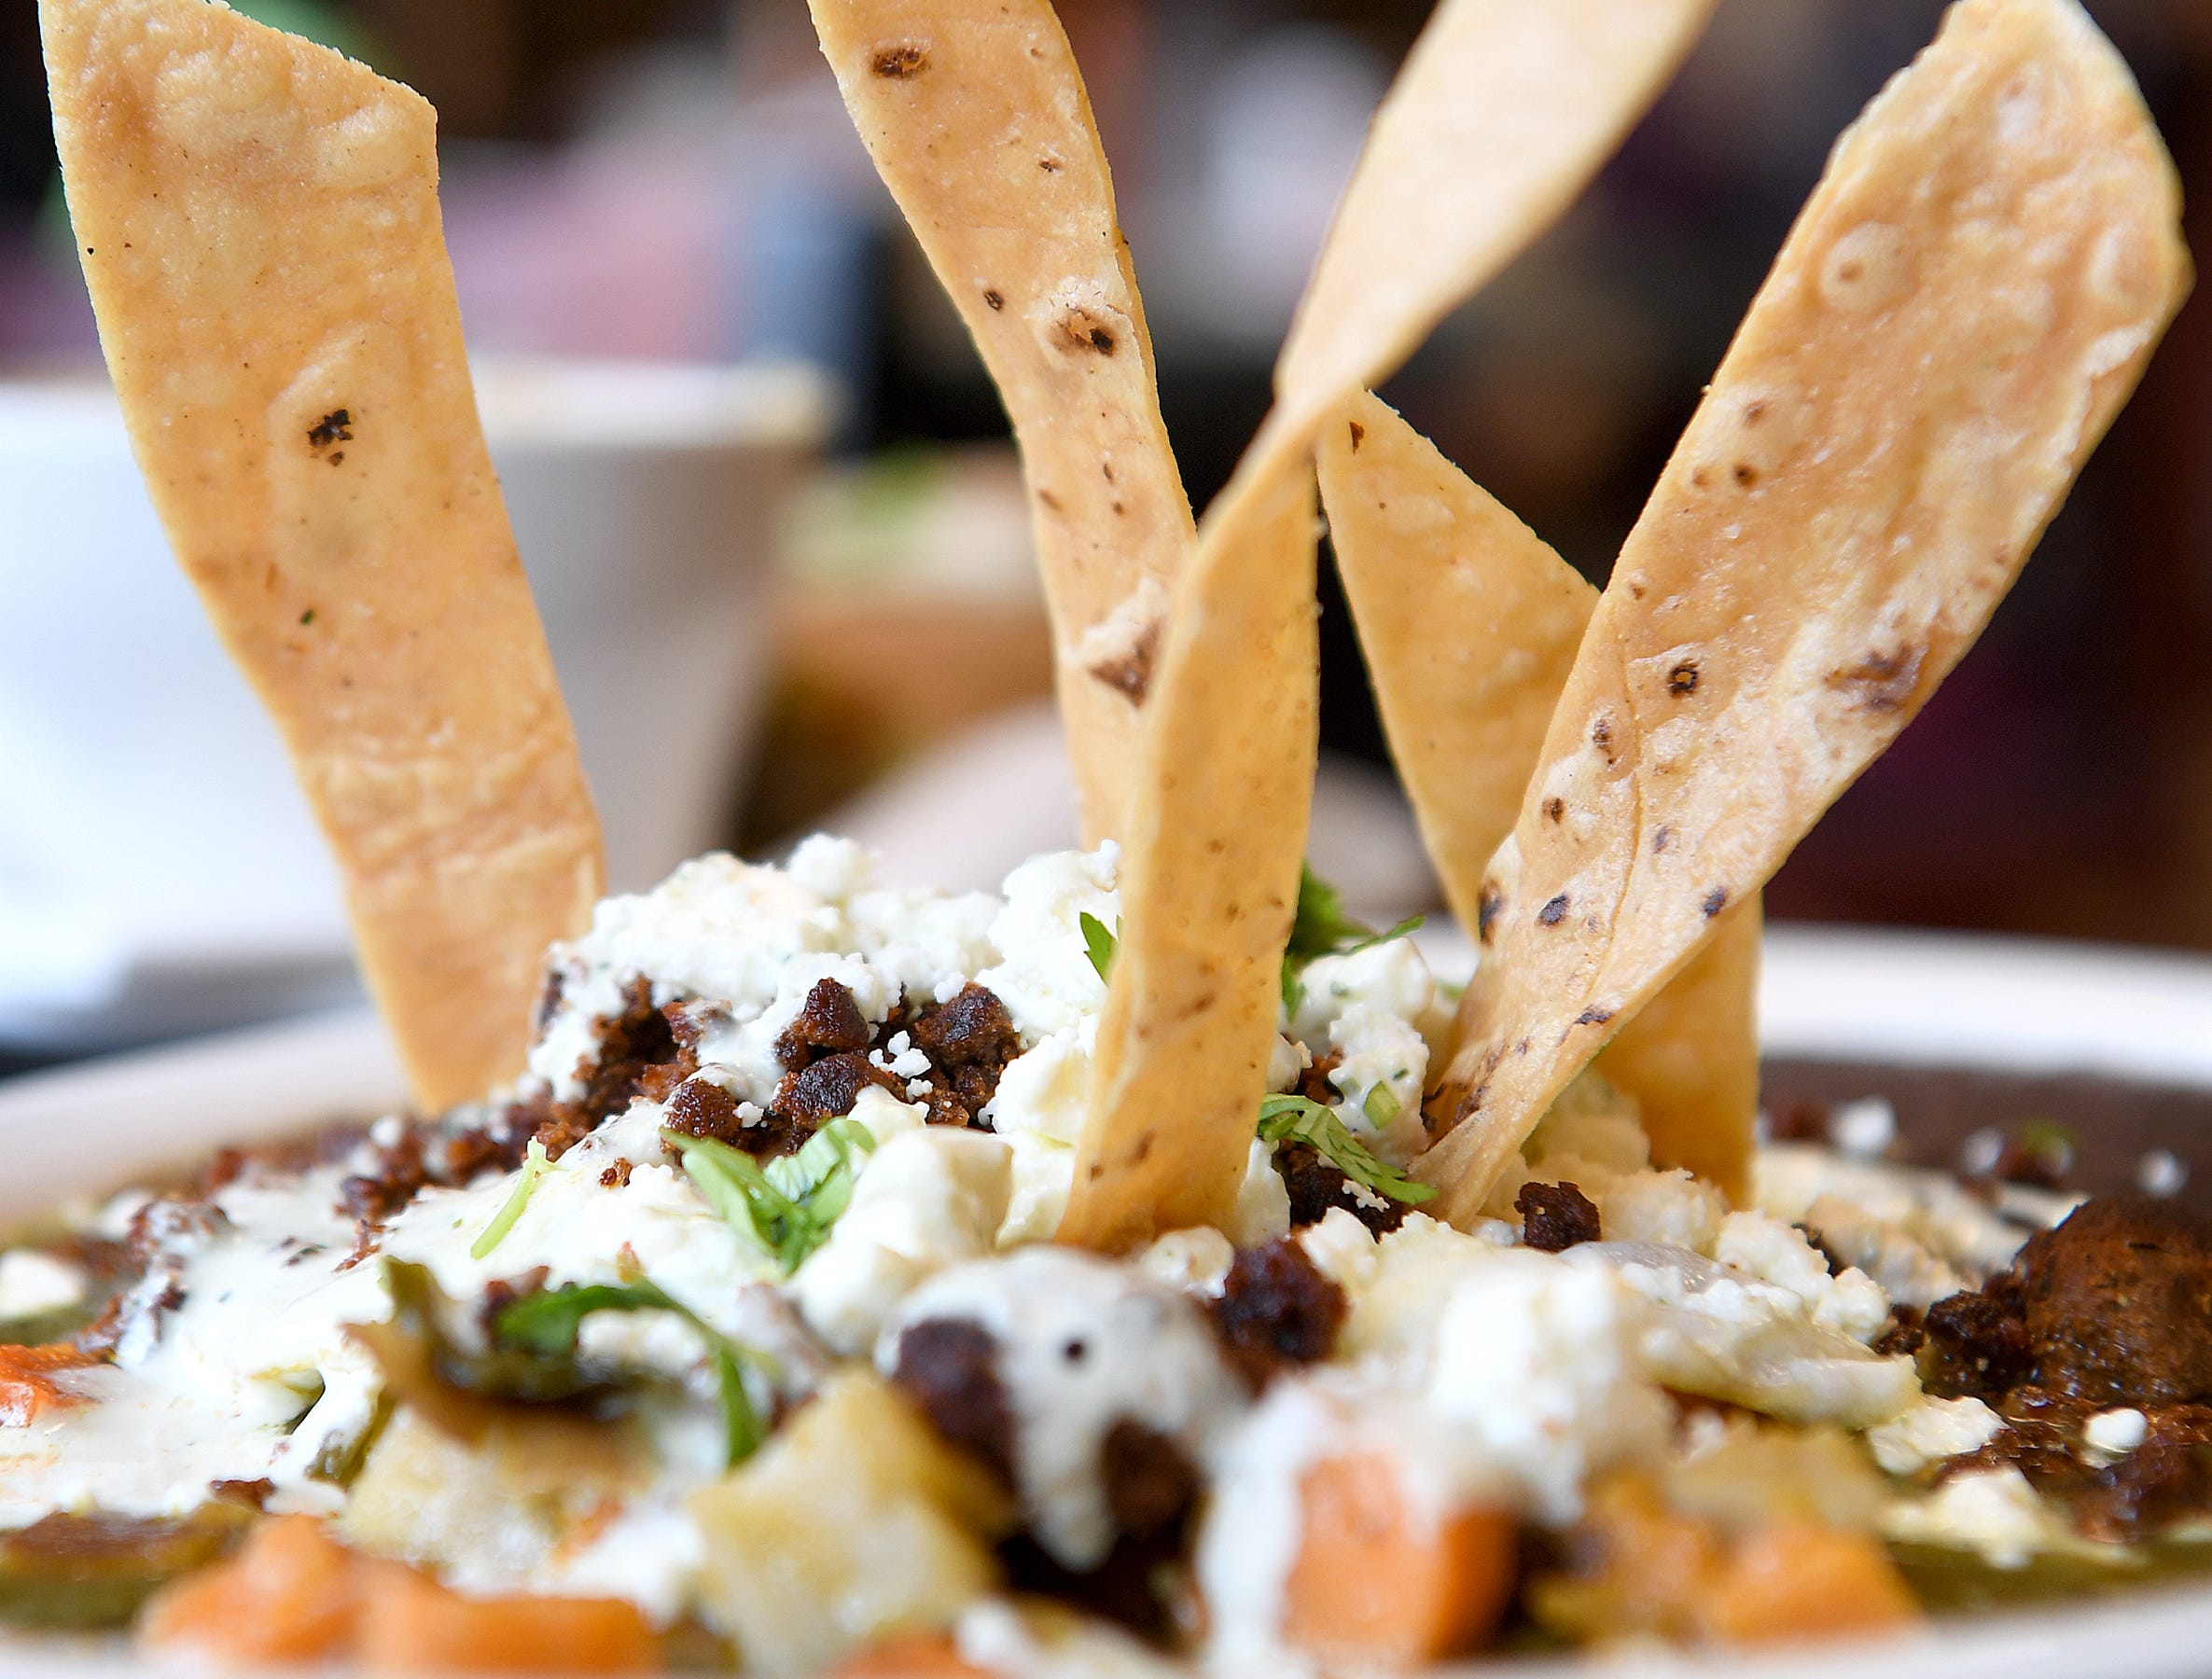 The huevos rancheros at Abeja's House Cafe is two eggs served on top of tomatillo salsa, roasted potatoes and refried Mexican black beans topped with Mexican chorizo sausage, feta cheese, avocado cream sauce, and gluten free corn tortilla strips.